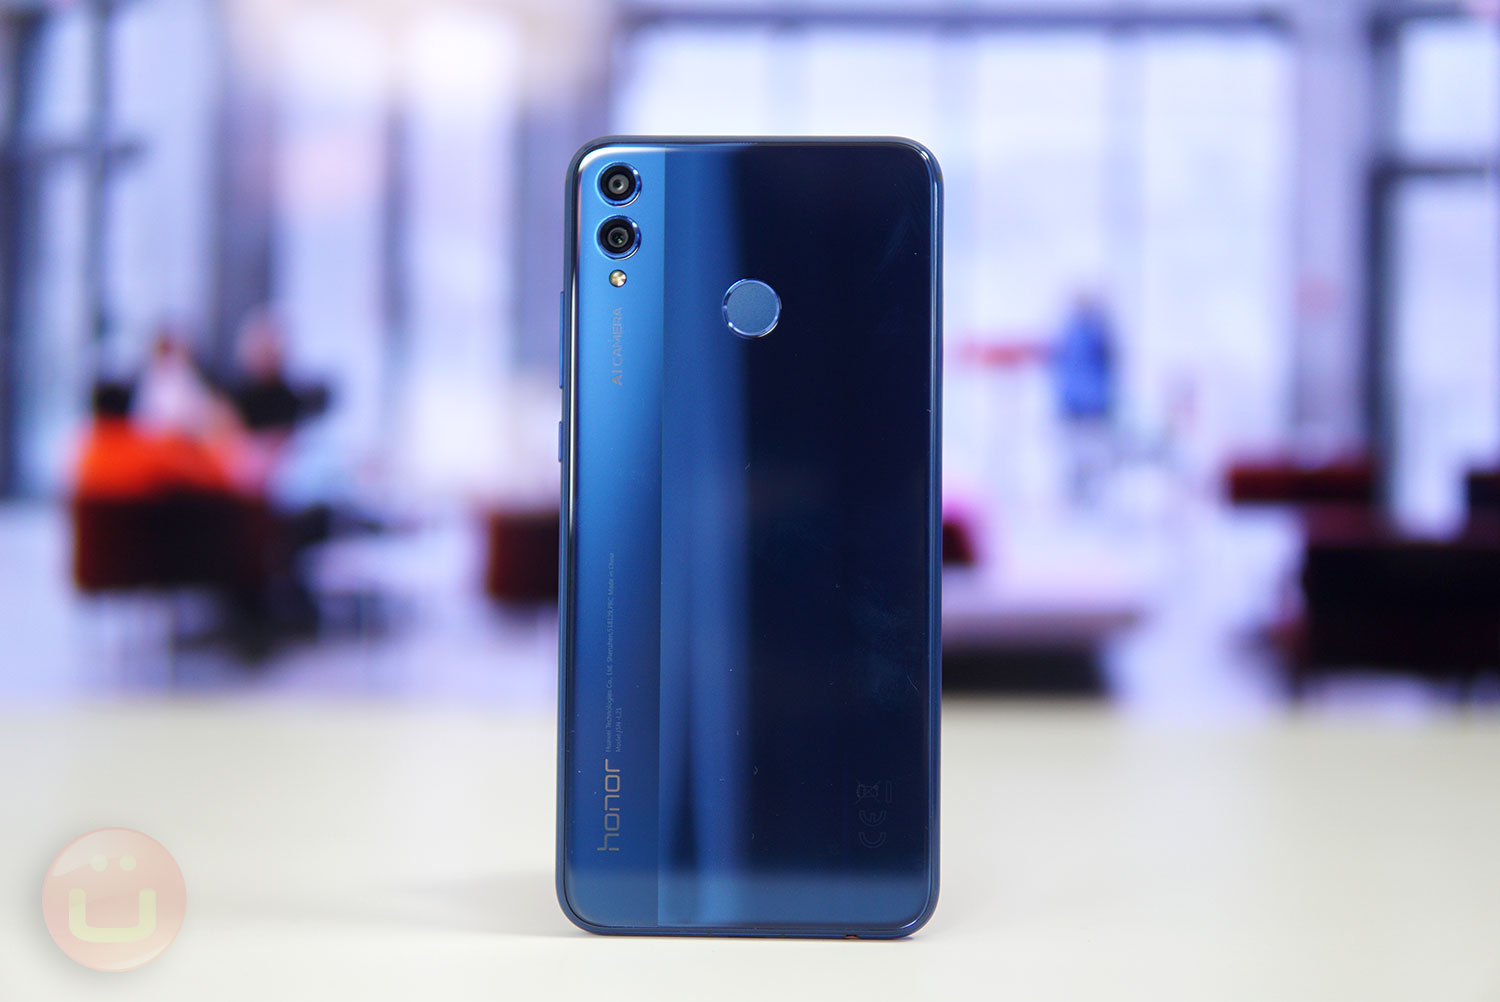 Honor 8X: An Affordable 6 5-inch Premium Android Phone